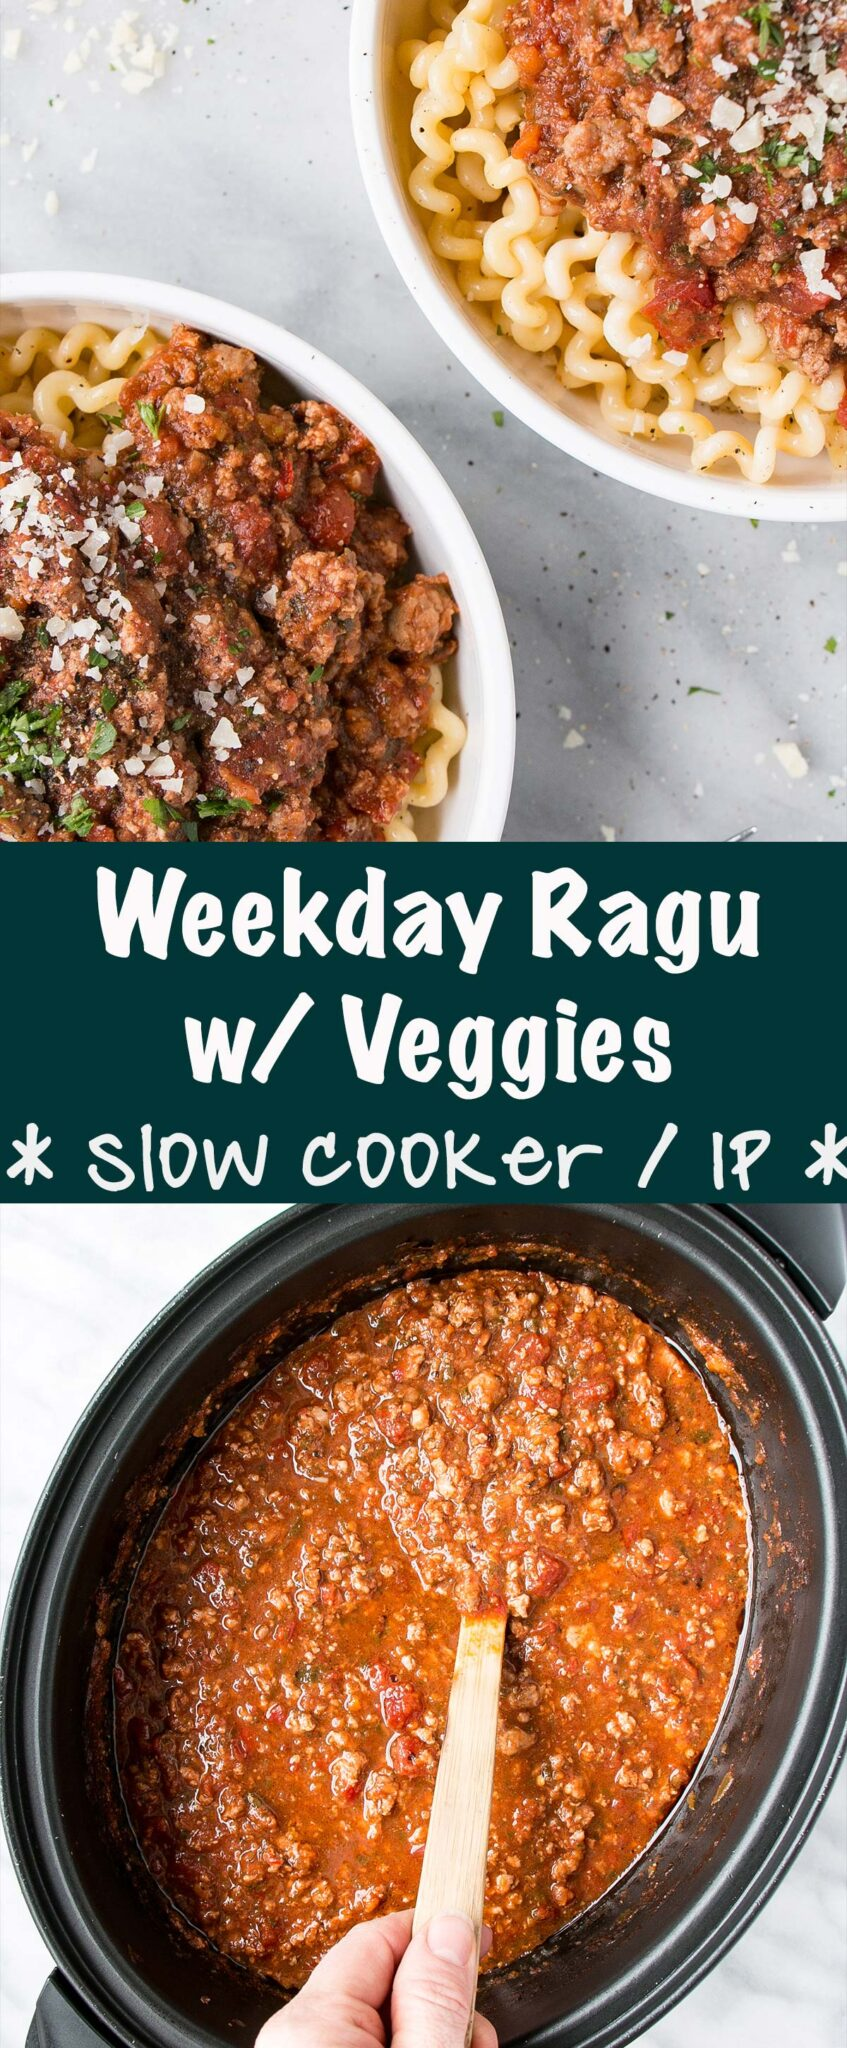 Weekday Ragù is packed with tons of vegetables and flavour! It's perfect for busy days and picky-eaters! Can be made in either a slow cooker or an instant pot! #instantpot #slowcooker #pastasauce #kidfriendly #comfortfood